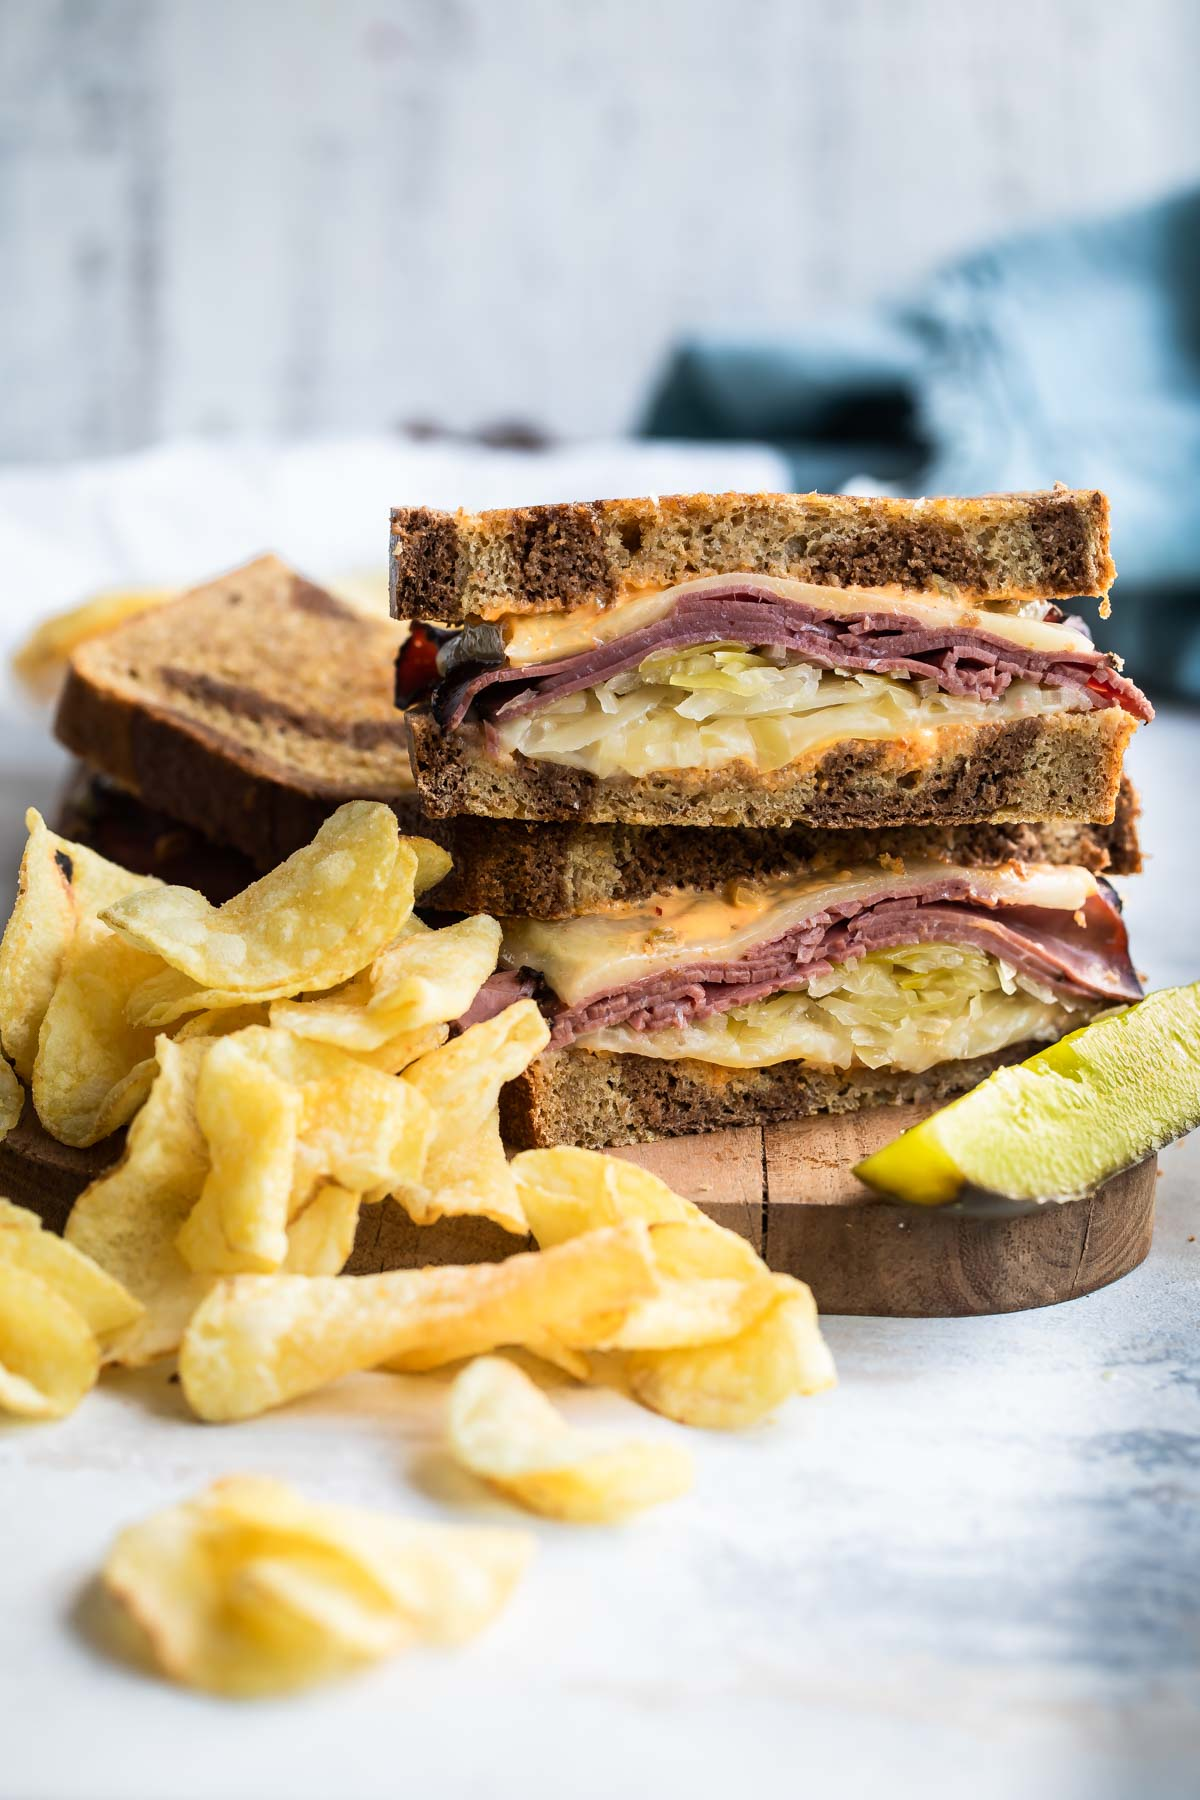 A A reuben sandwich on a cutting board surrounded by chips and a pickle spear.